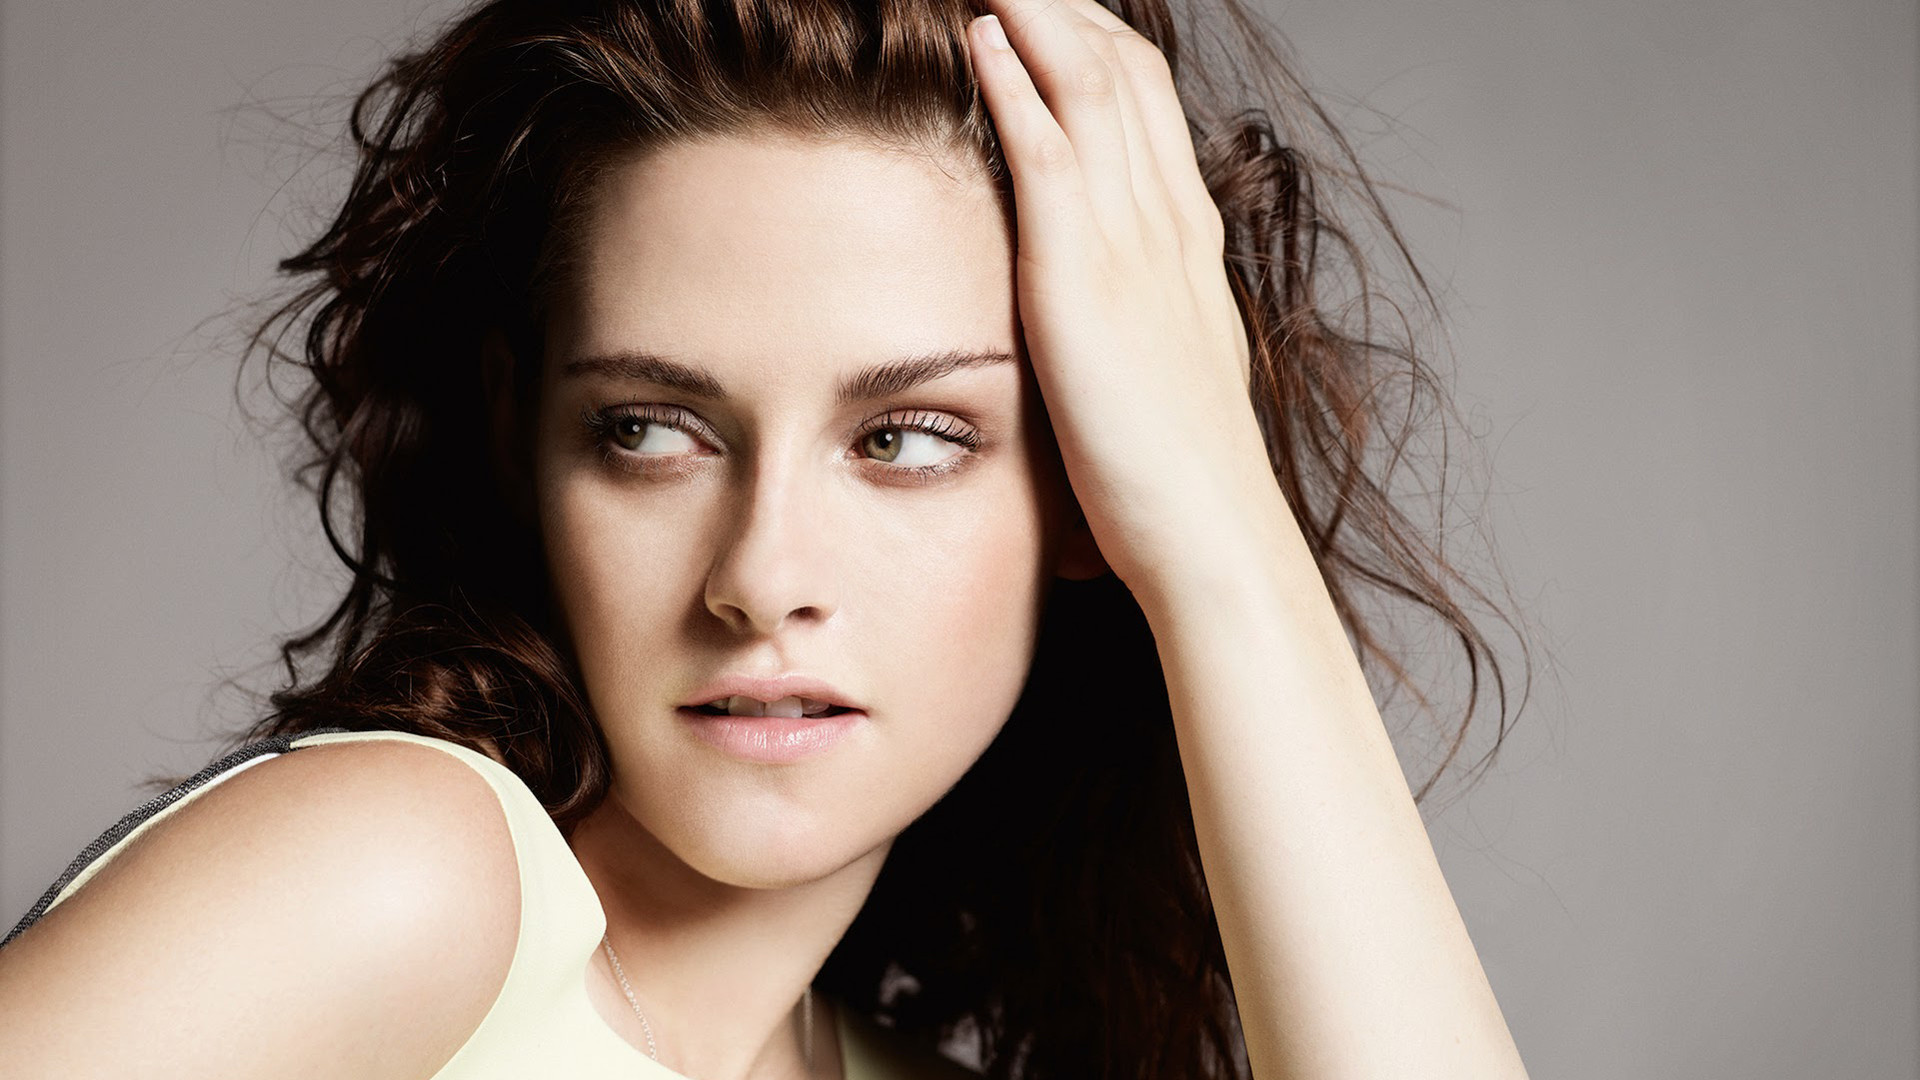 Res: 1920x1080, Kristen Stewart Wallpapers 13 - 1920 X 1080